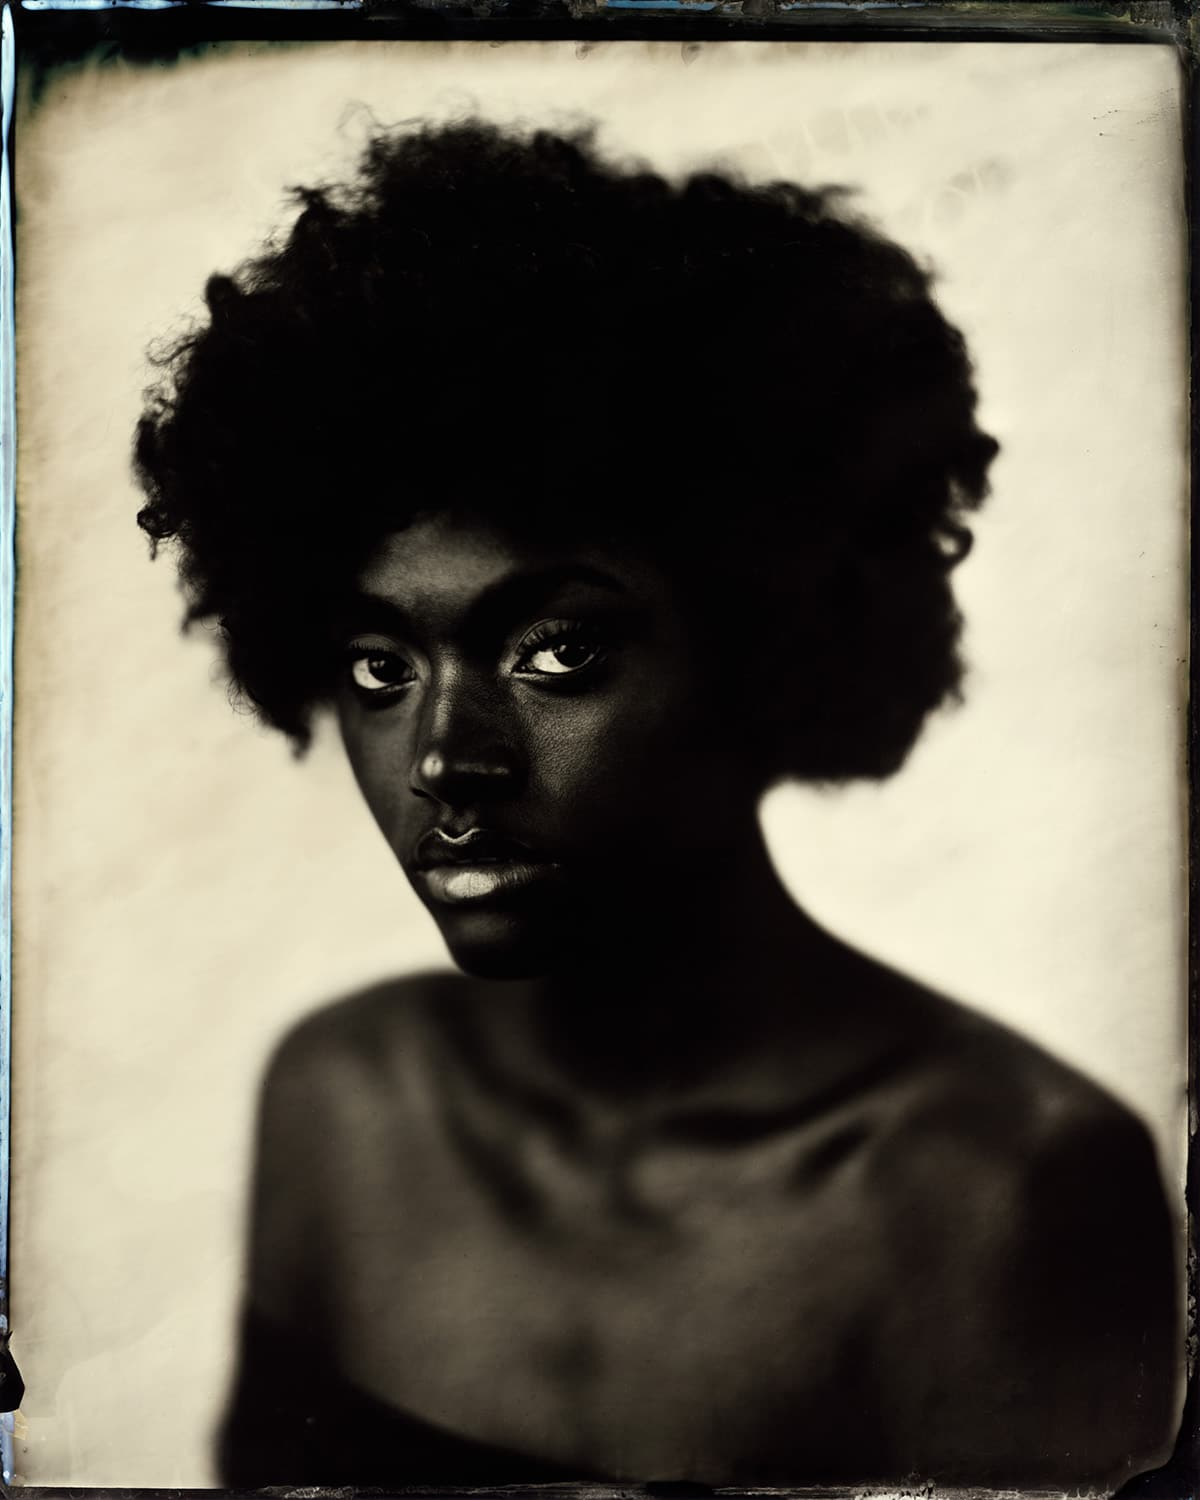 Wet Plate Photography Competition